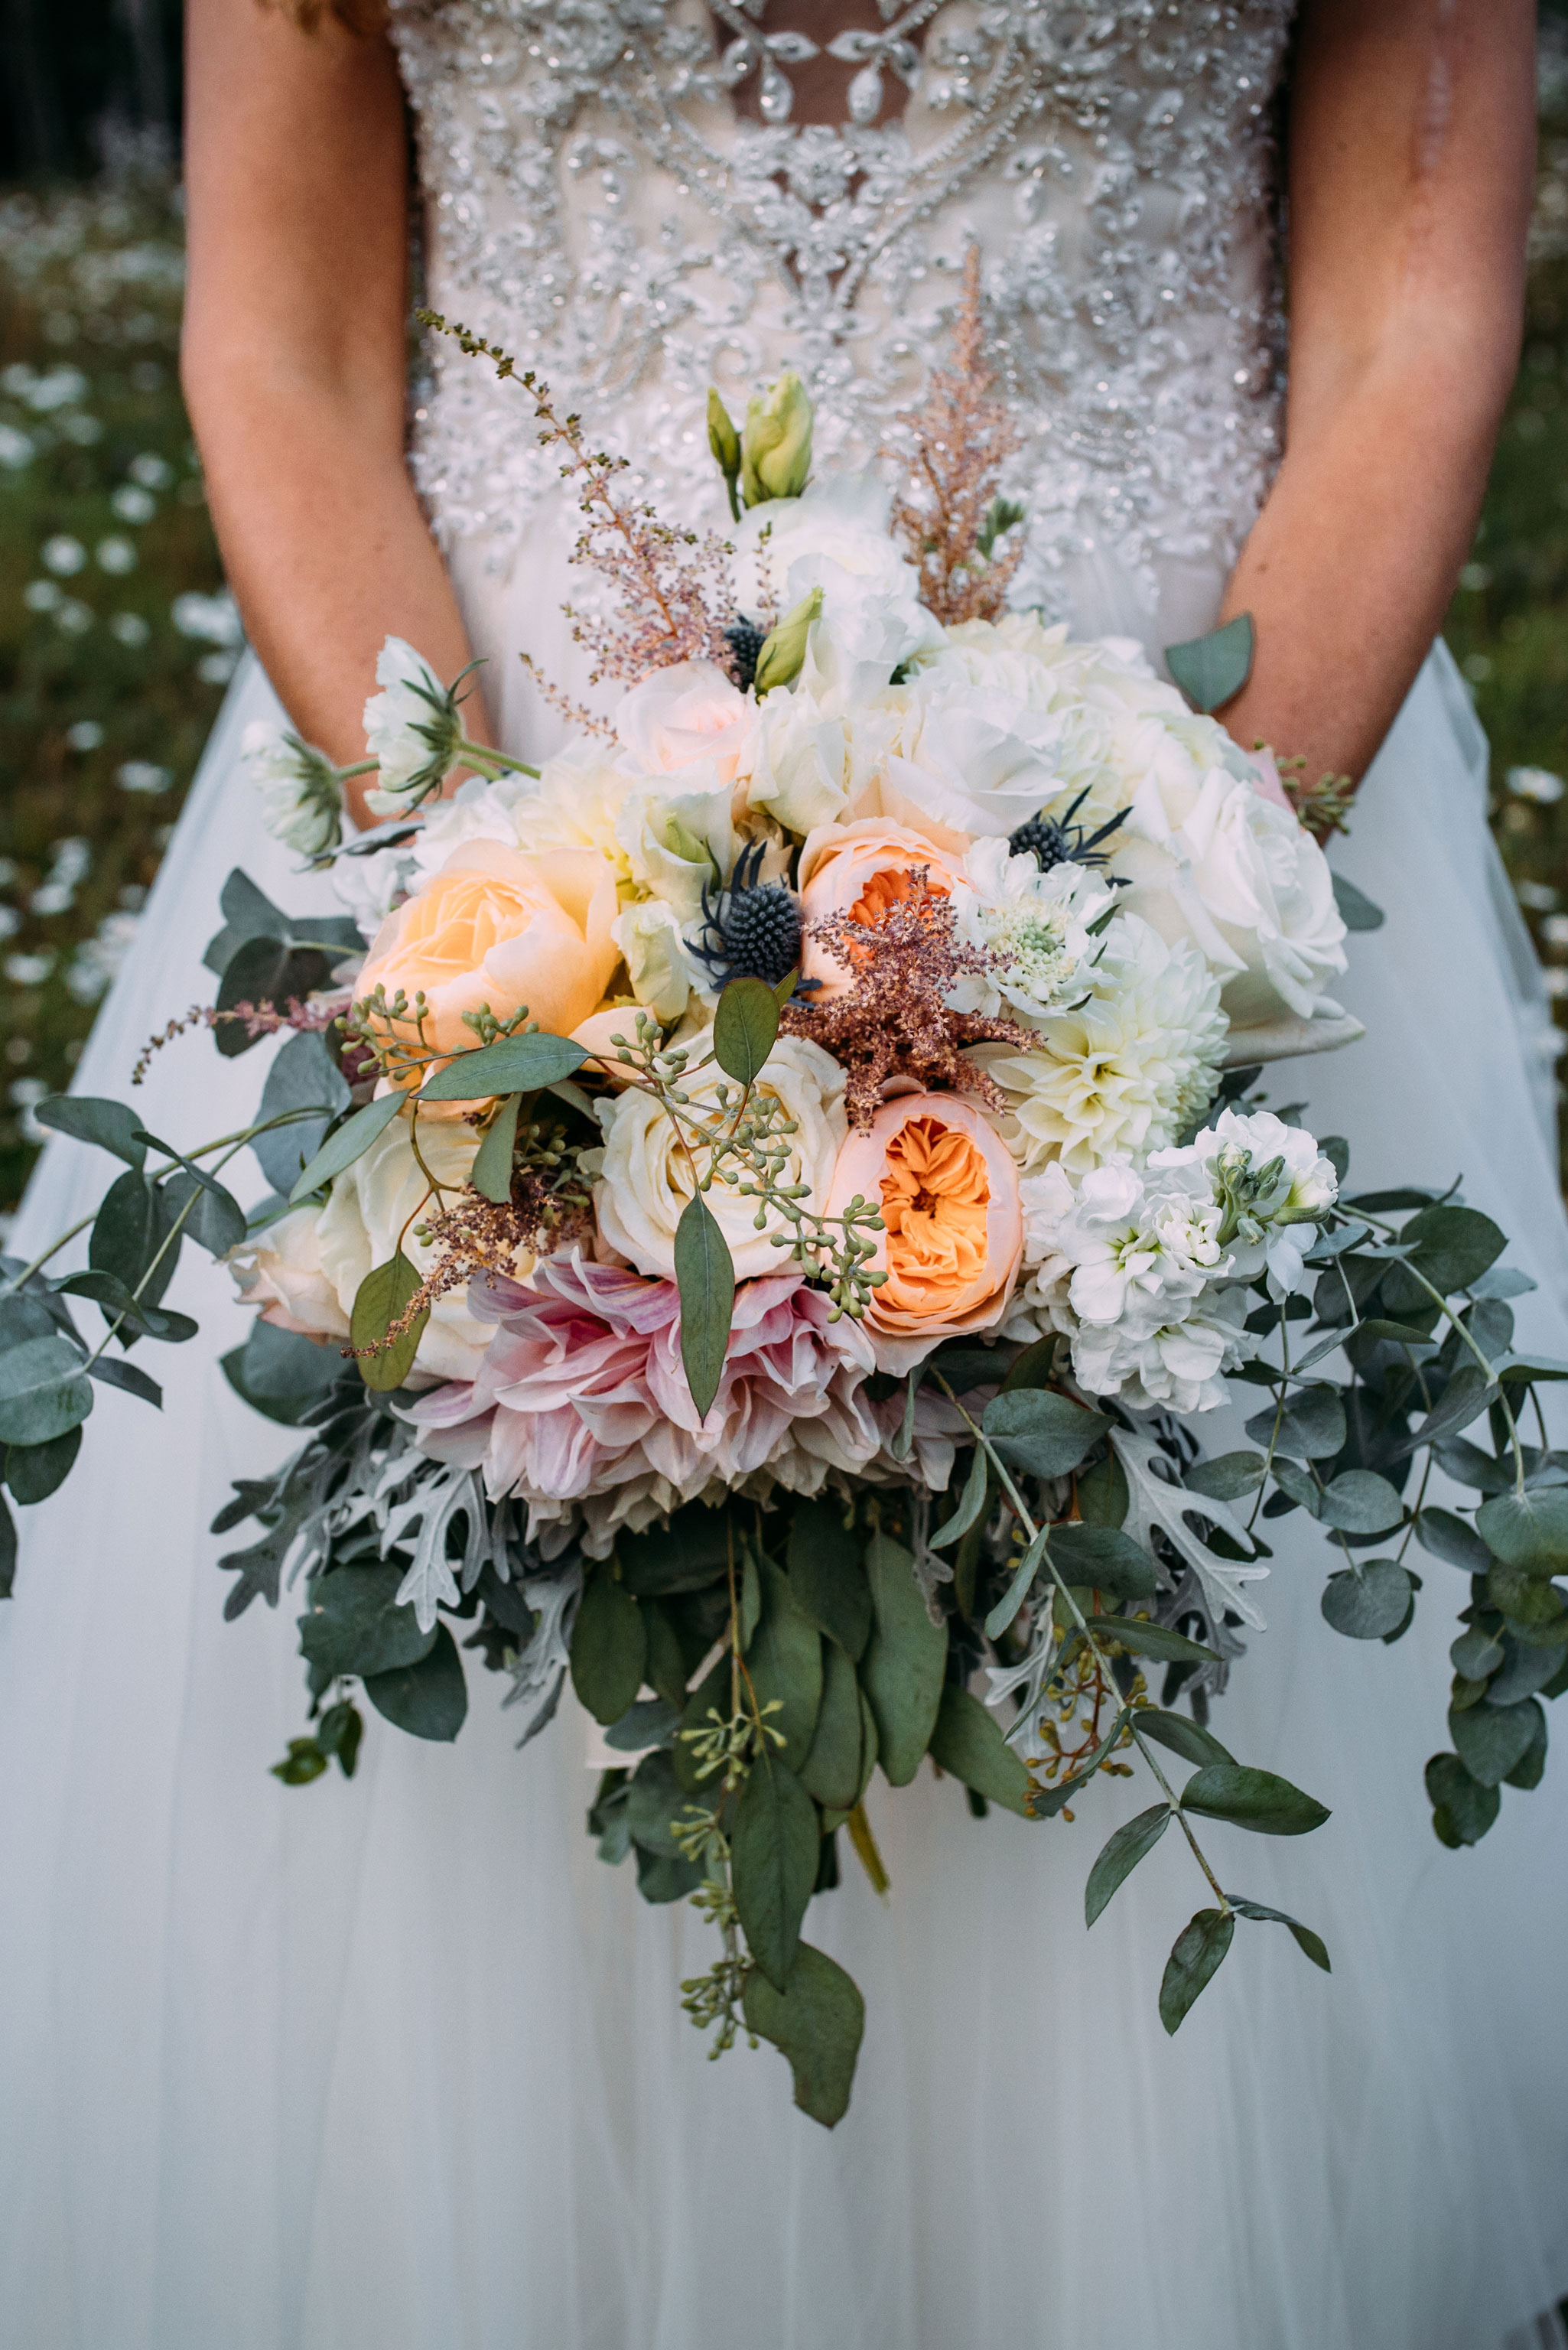 9 Gorgeous Floral Bouquets from 2018 Weddings